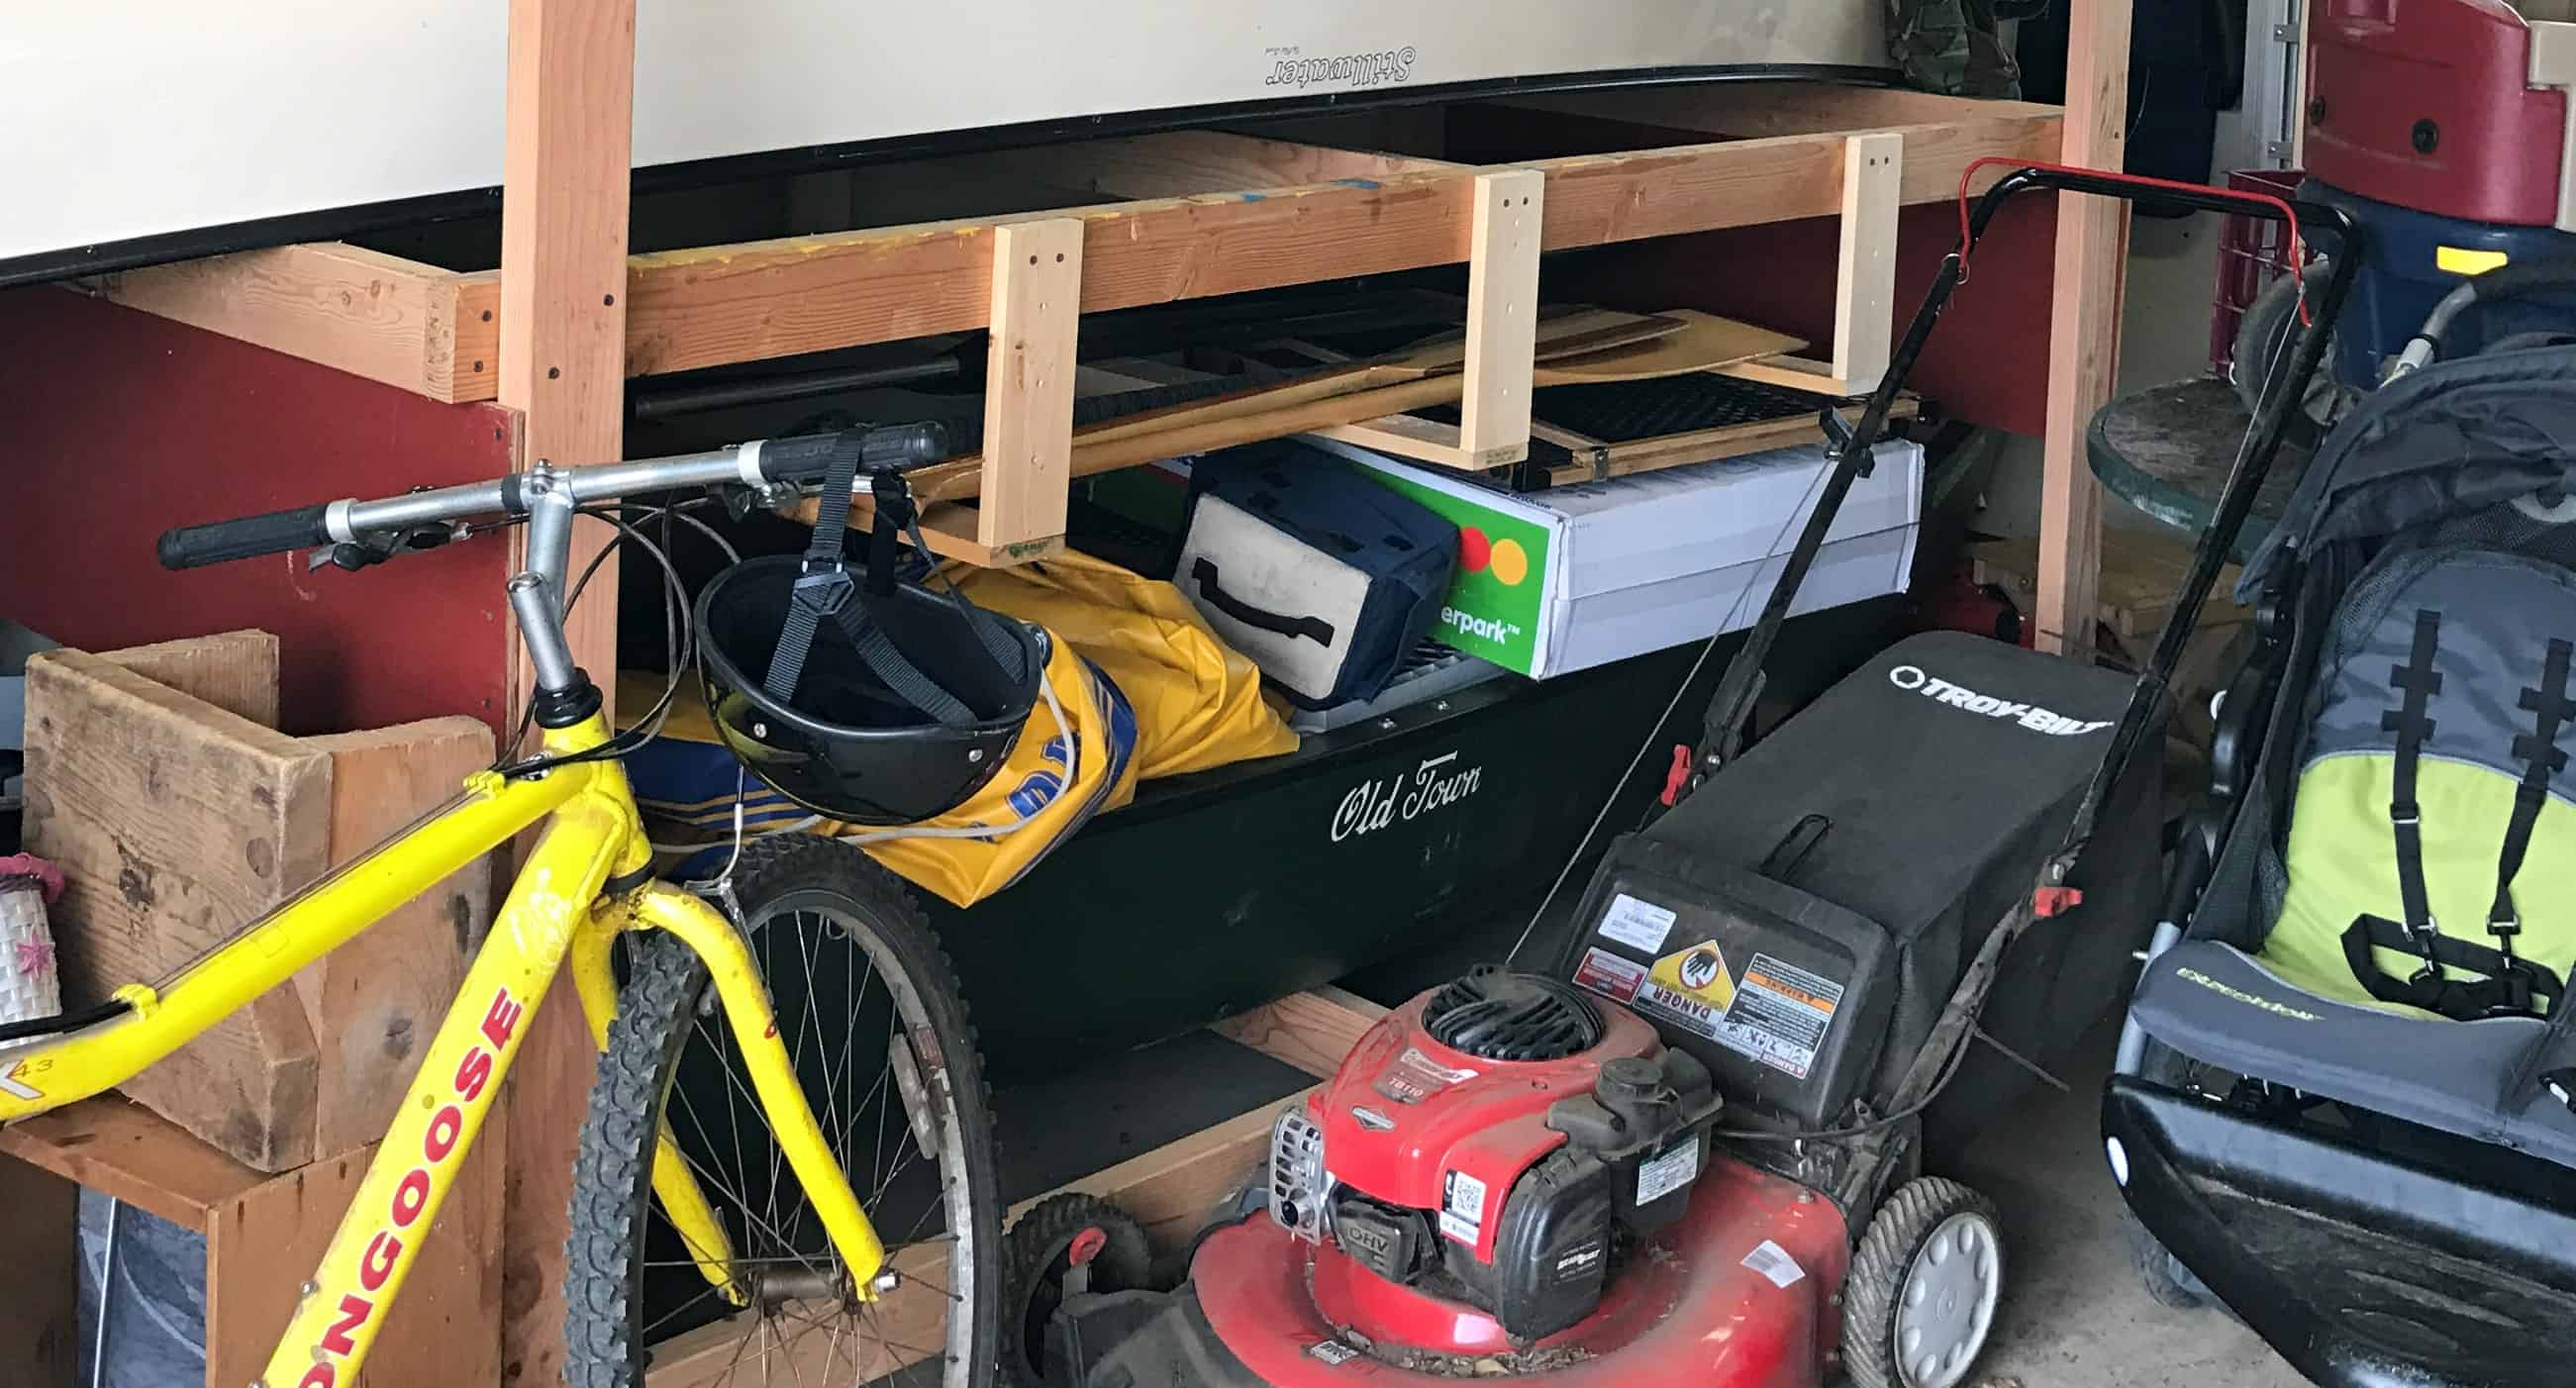 The Best Dual Purpose Storage In My Garage Is Tote On Top Of Our Off Season Tires Its Perfect Size And Height For A Workbench